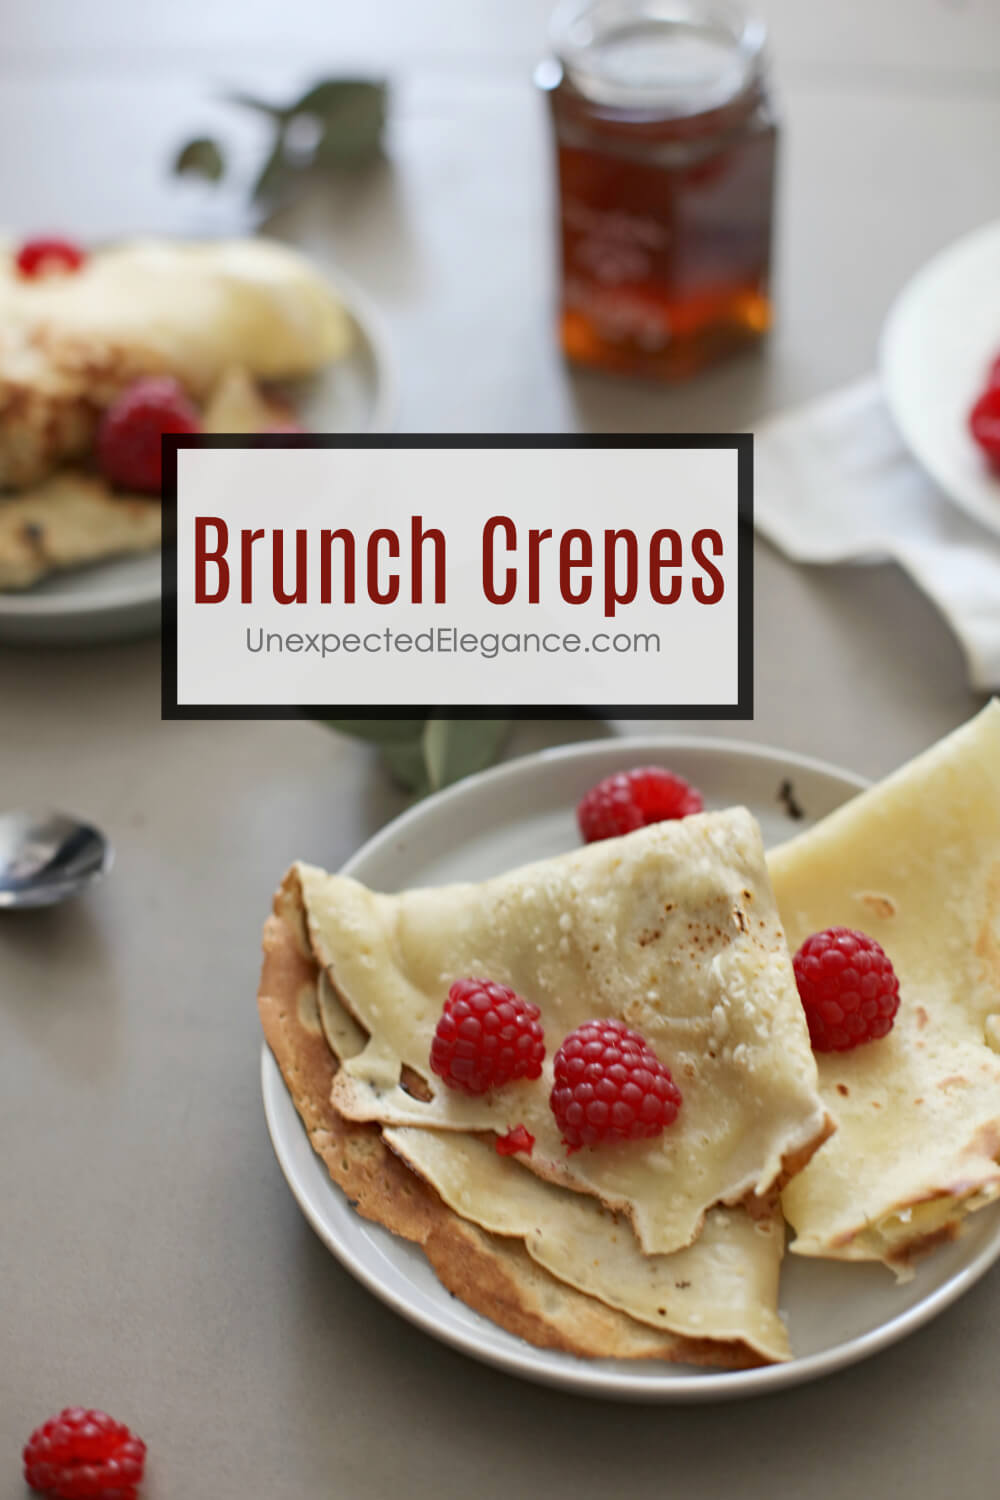 Try this delicious and versatile crepe recipe. You can add your own topping to personalize. It's delicious and is perfect for a Sunday brunch or even as a dessert.